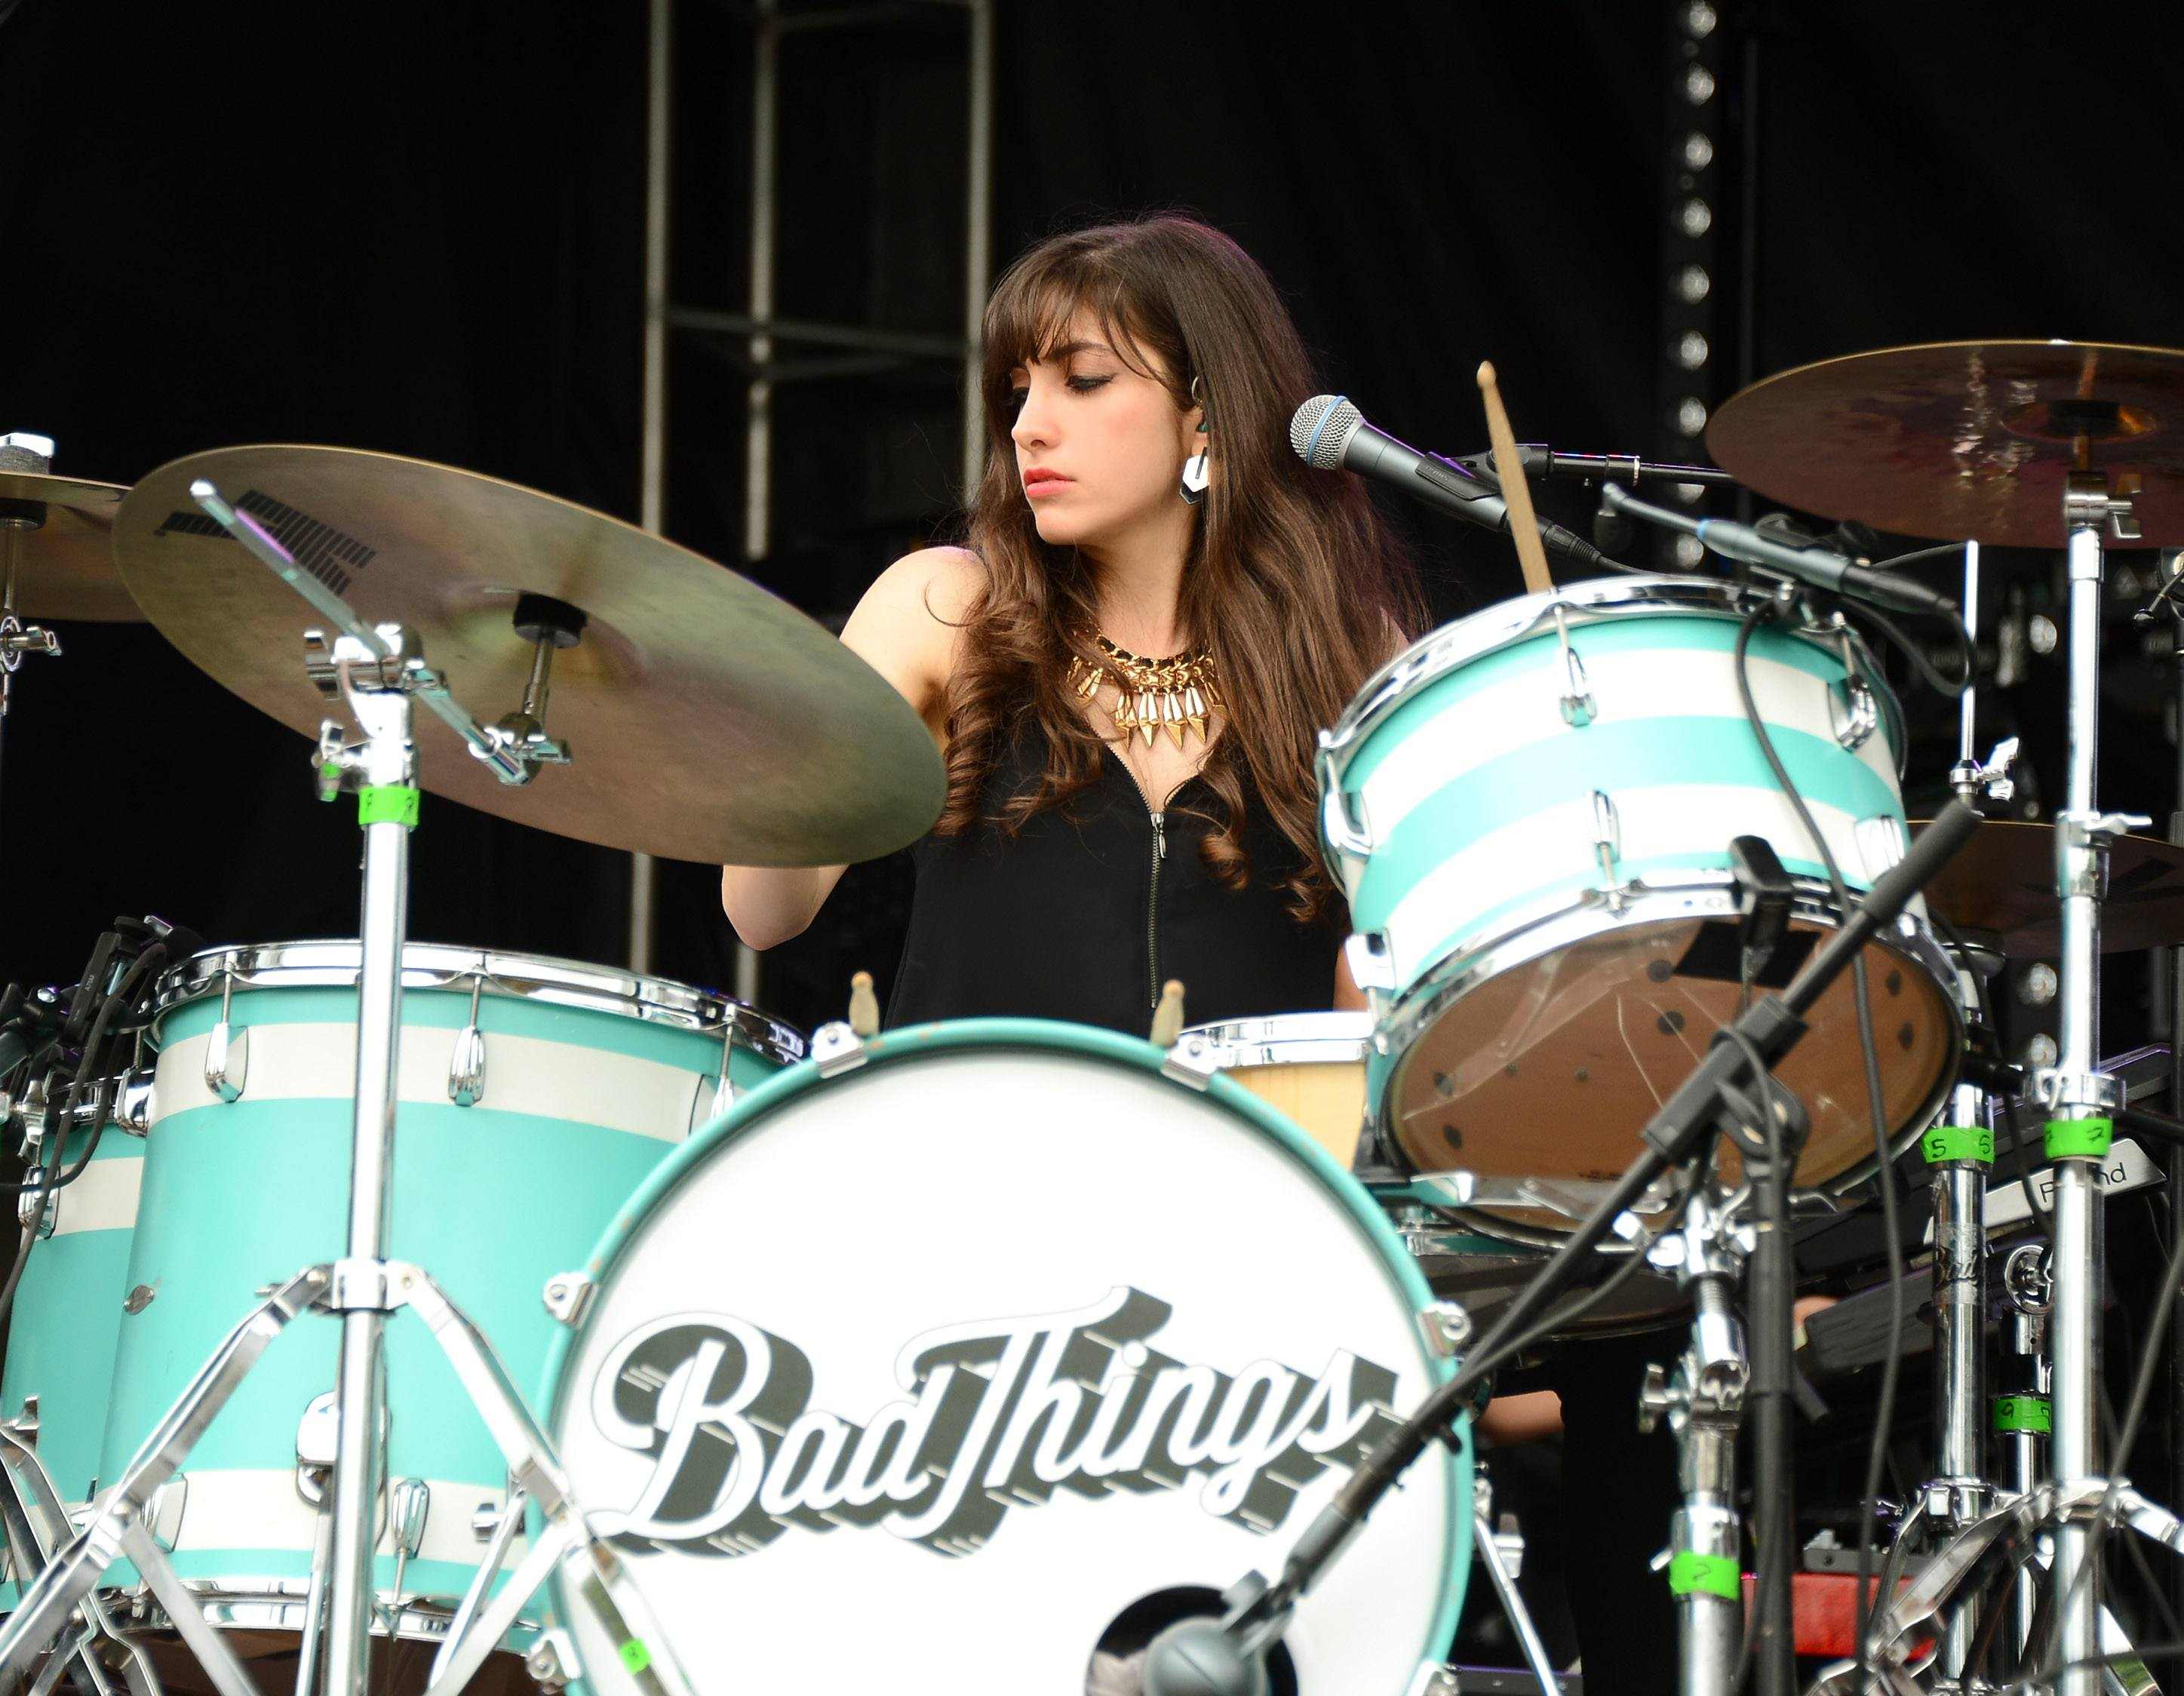 Lena Zawaideh of Bad Things performs onstage during day 3 of the Firefly Music Festival on June 21, 2014 in Dover, Delaware.